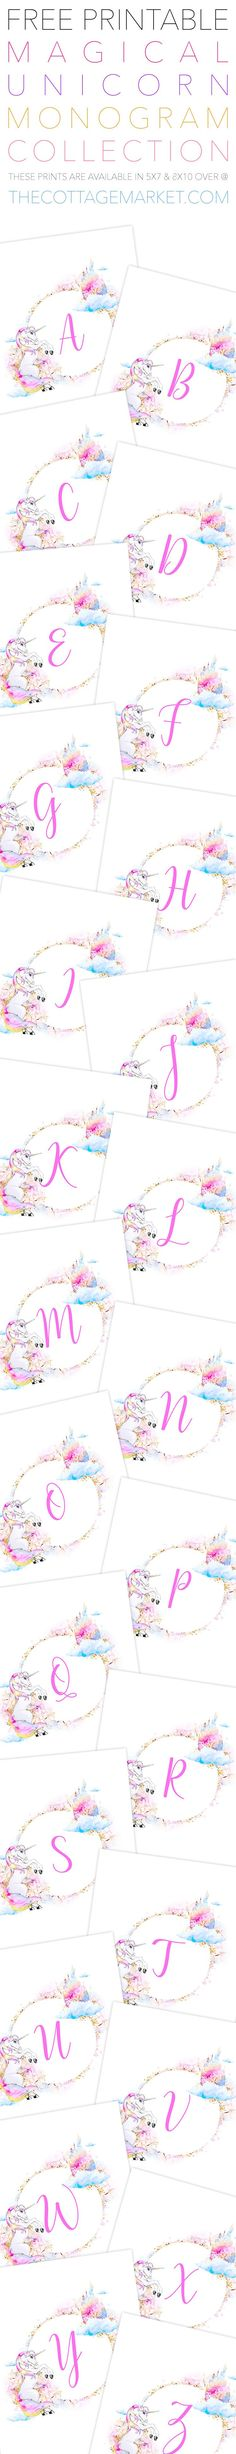 Free Unicorn Printable Monograms Collection Free Printable Magical Unicorn Monogram Collection that comes in 2 sizes are going to look Unicorn Printables, Free Printables, Unicorn Birthday Parties, Birthday Cards, Unicorn Crafts, Magical Unicorn, Free Gift Cards, Gift Tags, Rainbow Unicorn